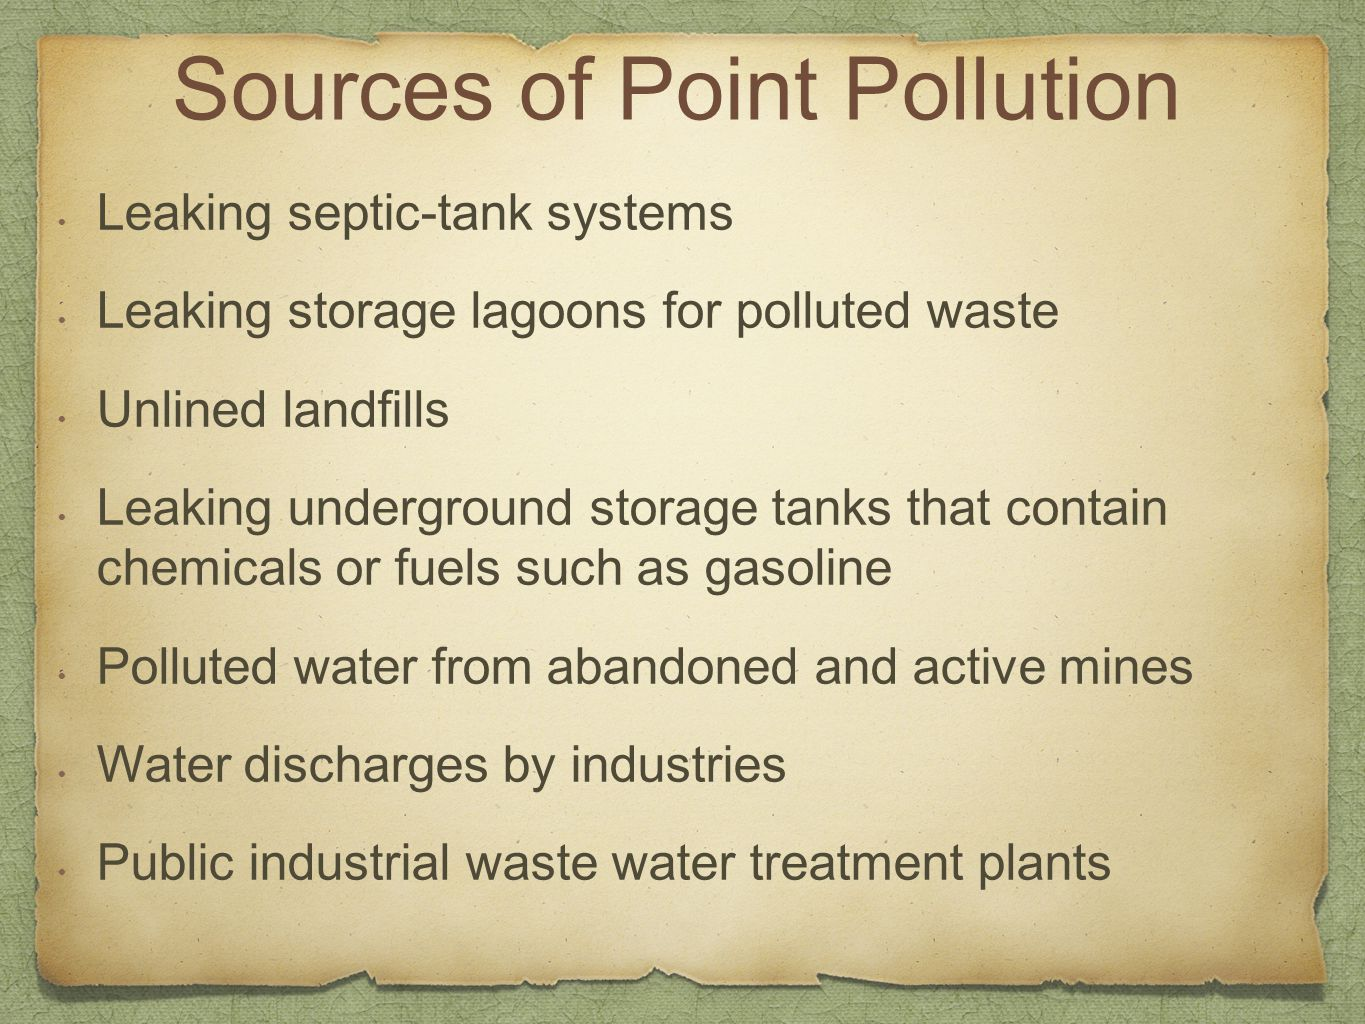 Sources of Point Pollution